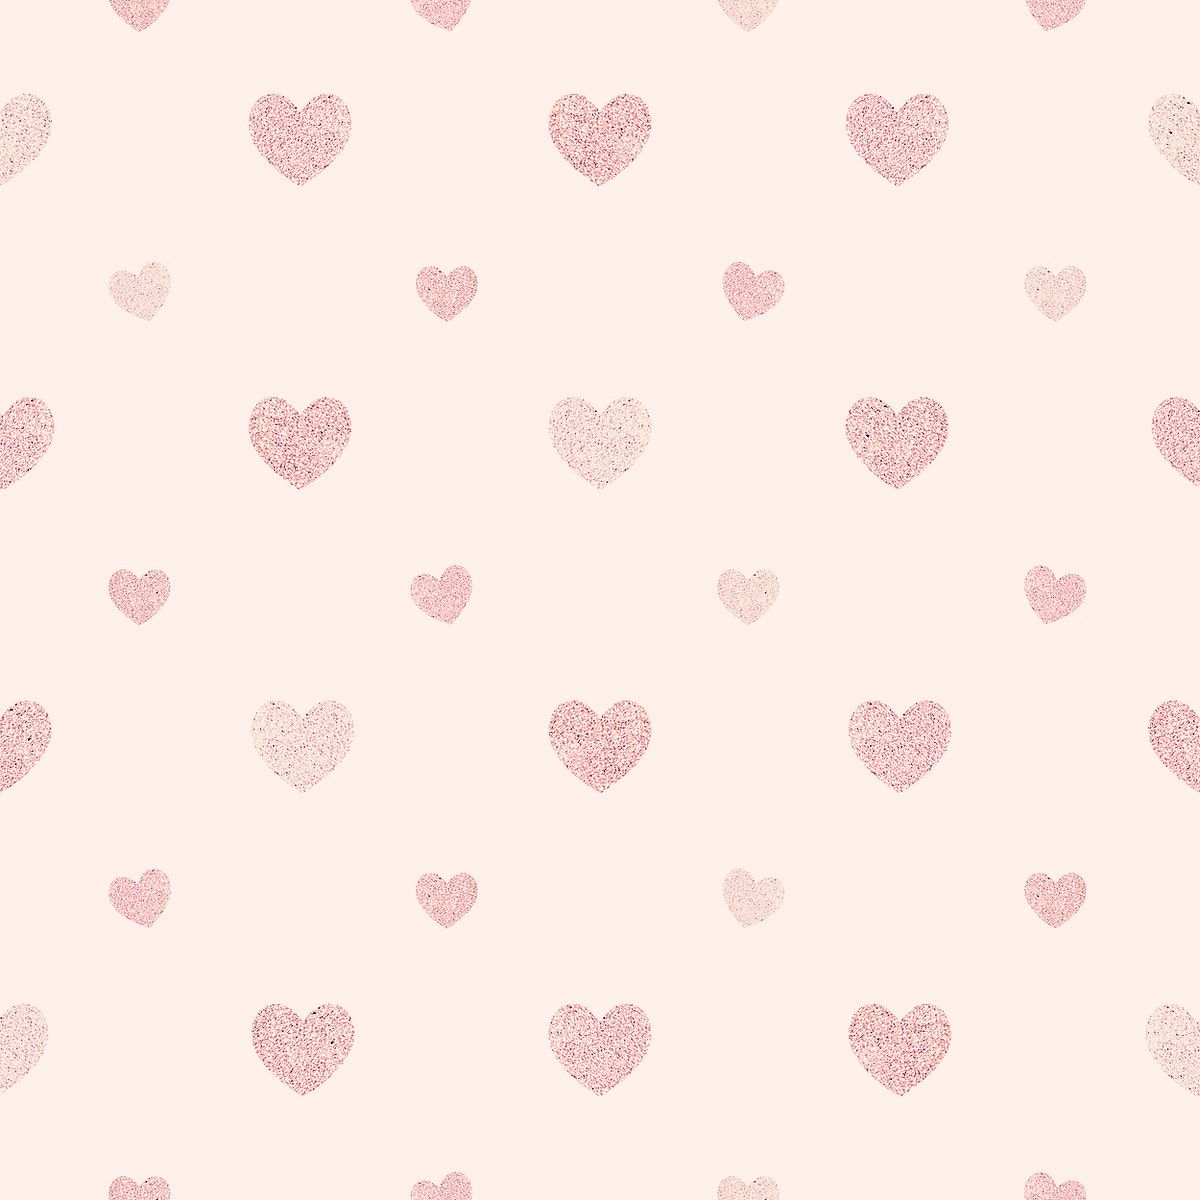 Seamless Glittery Pink Hearts Patterned Background Free Image By Rawpixel Com Ningzk V Pink Heart Background Pink Heart Pattern Heart Pattern Background